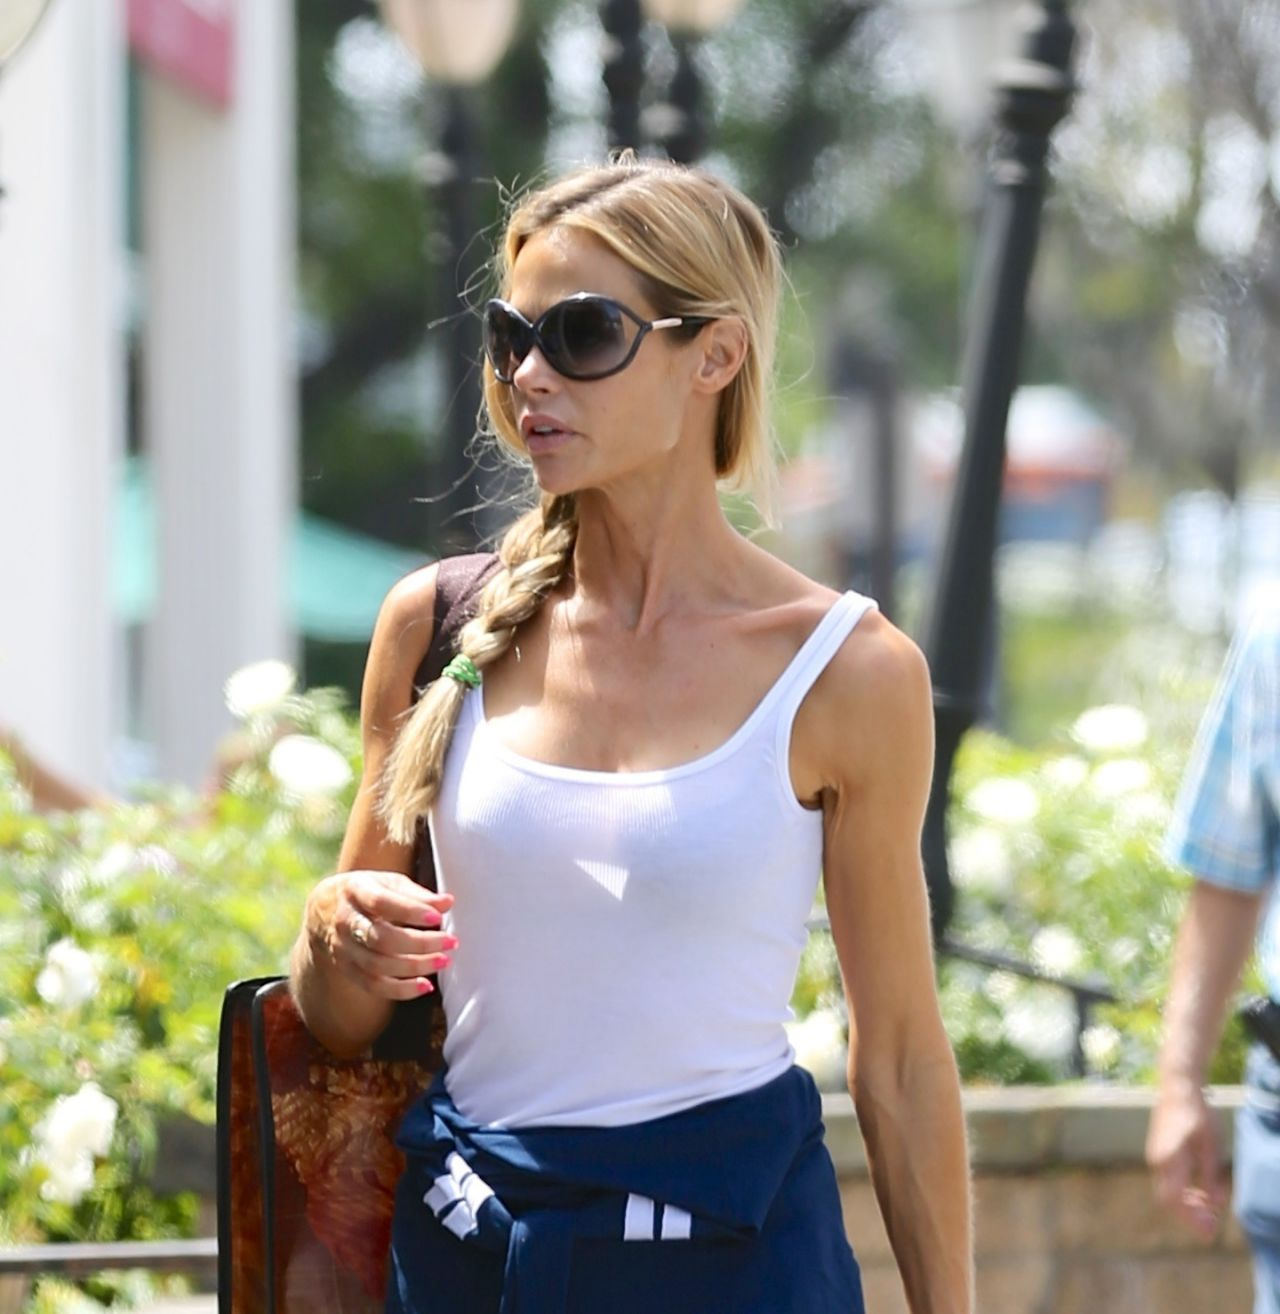 Denise Richards in Jeans Out in Calabasas - April 2014